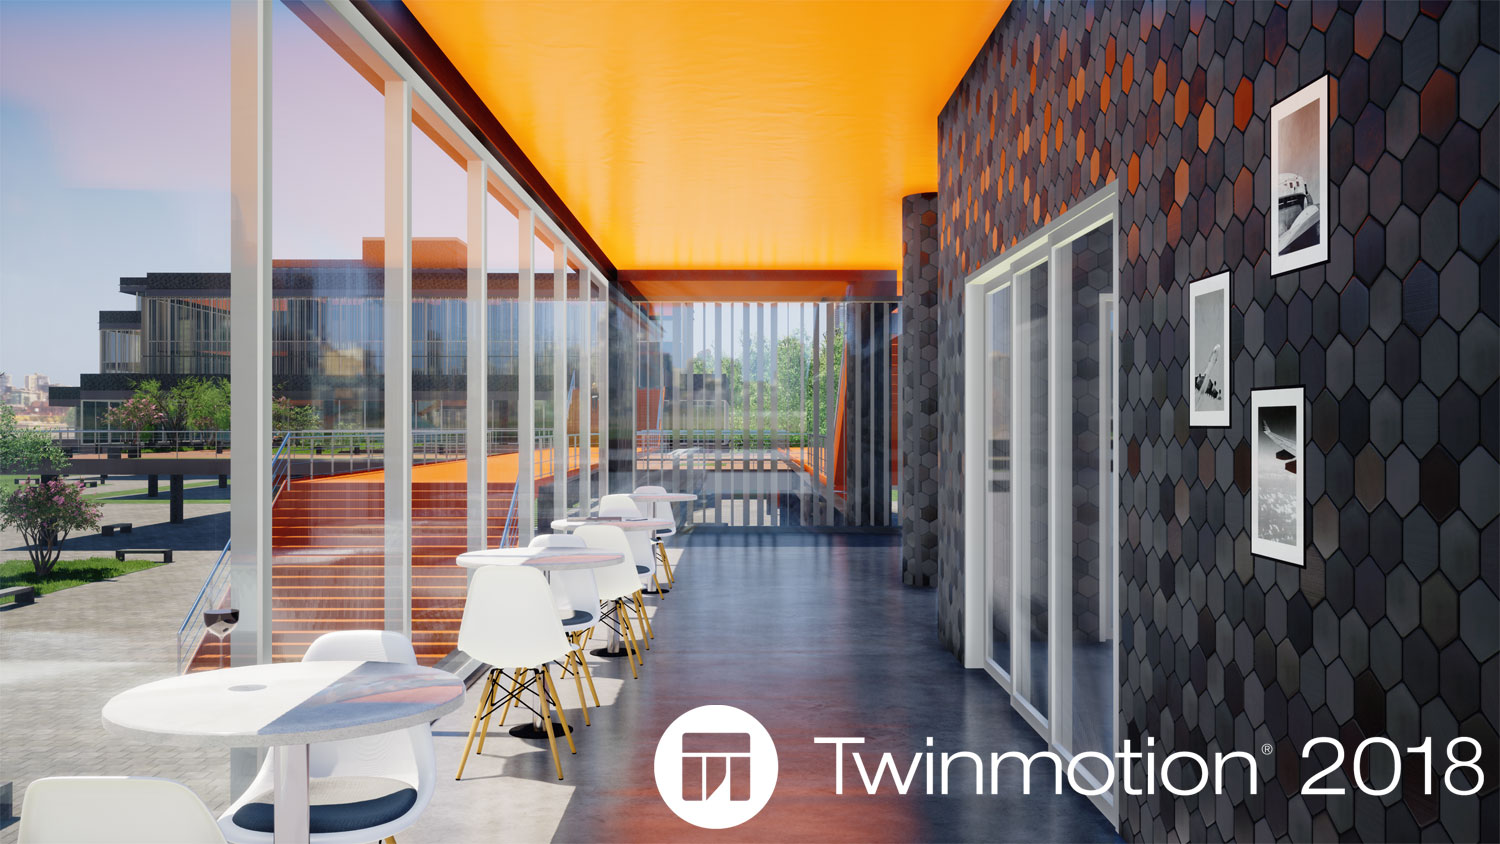 New: Twinmotion 2018 with Unreal Engine!